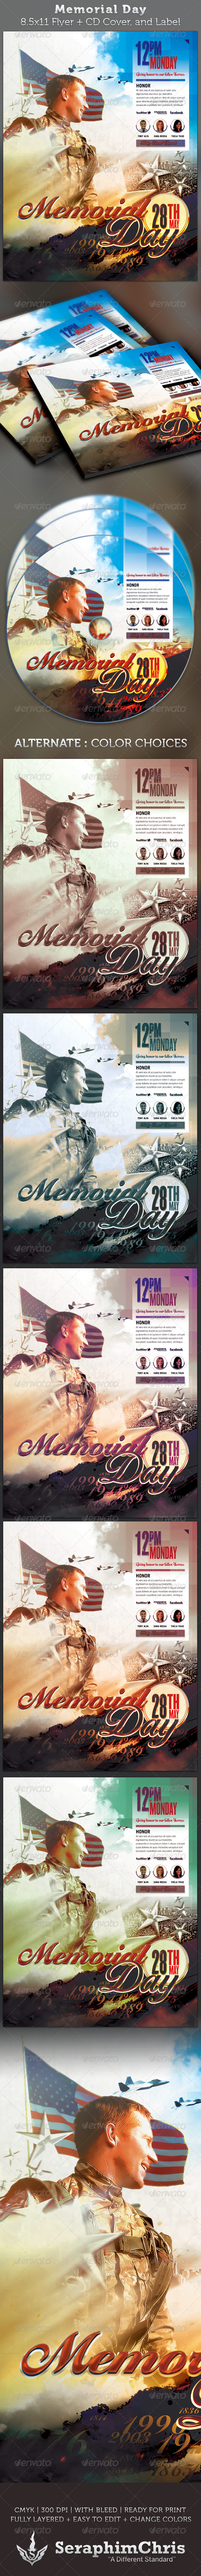 Memorial Day Full Page Flyer and CD Cover - Church Flyers